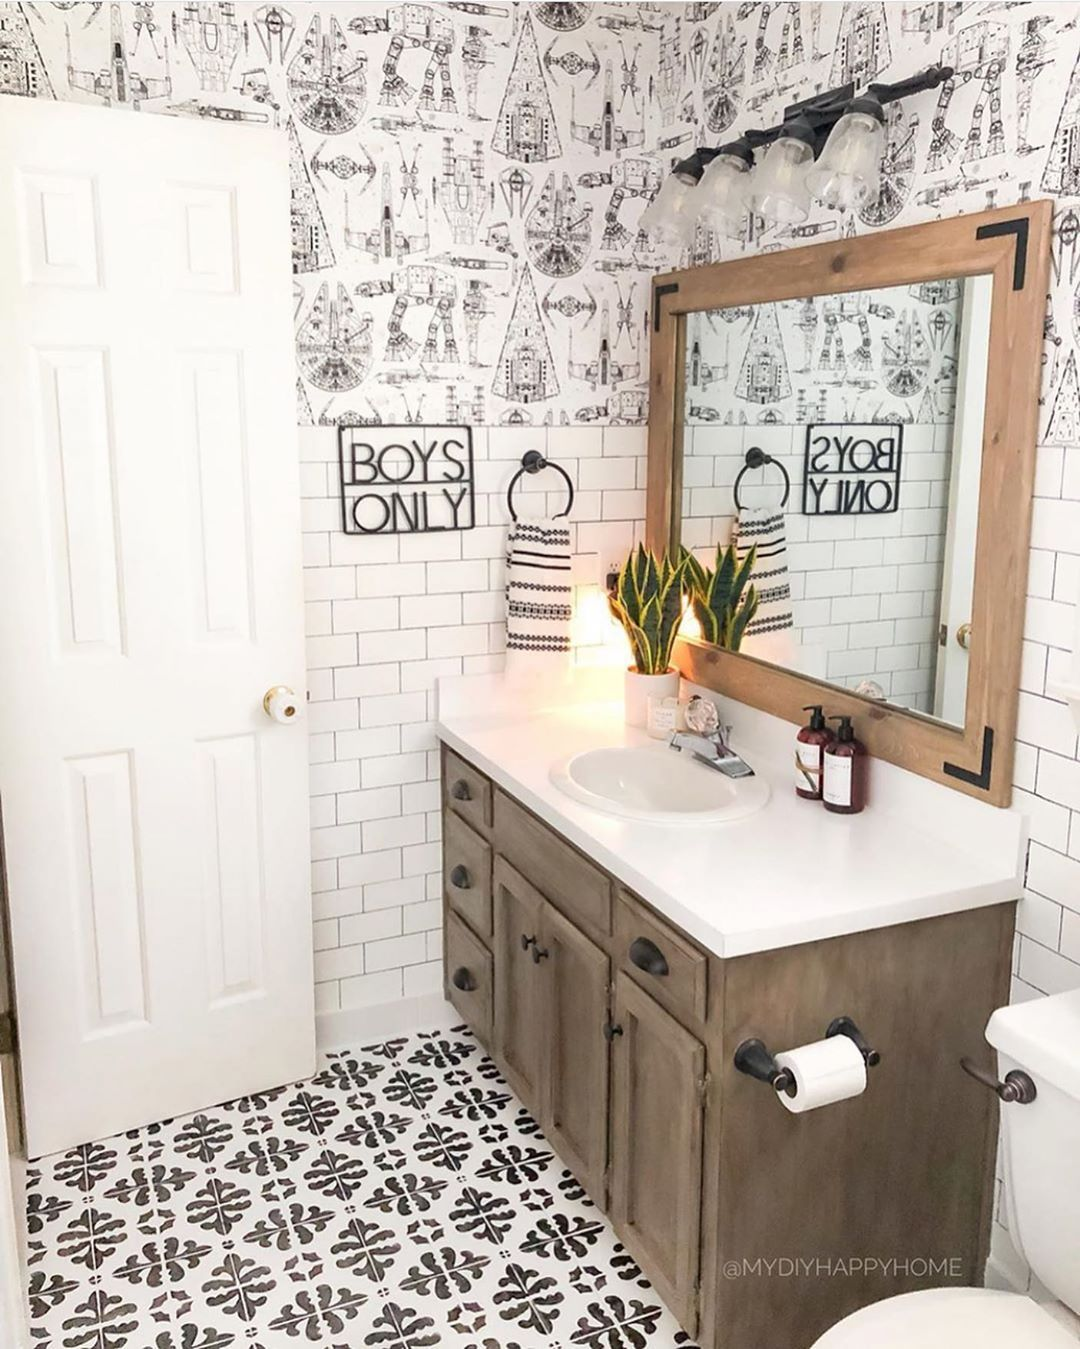 Farmhouse Features On Instagram Happy Thursday Omg This Is The Cutest Kids Bathroom Ever Any Boys Bathroom Bright Kids Bathroom Farmhouse Bathroom Decor